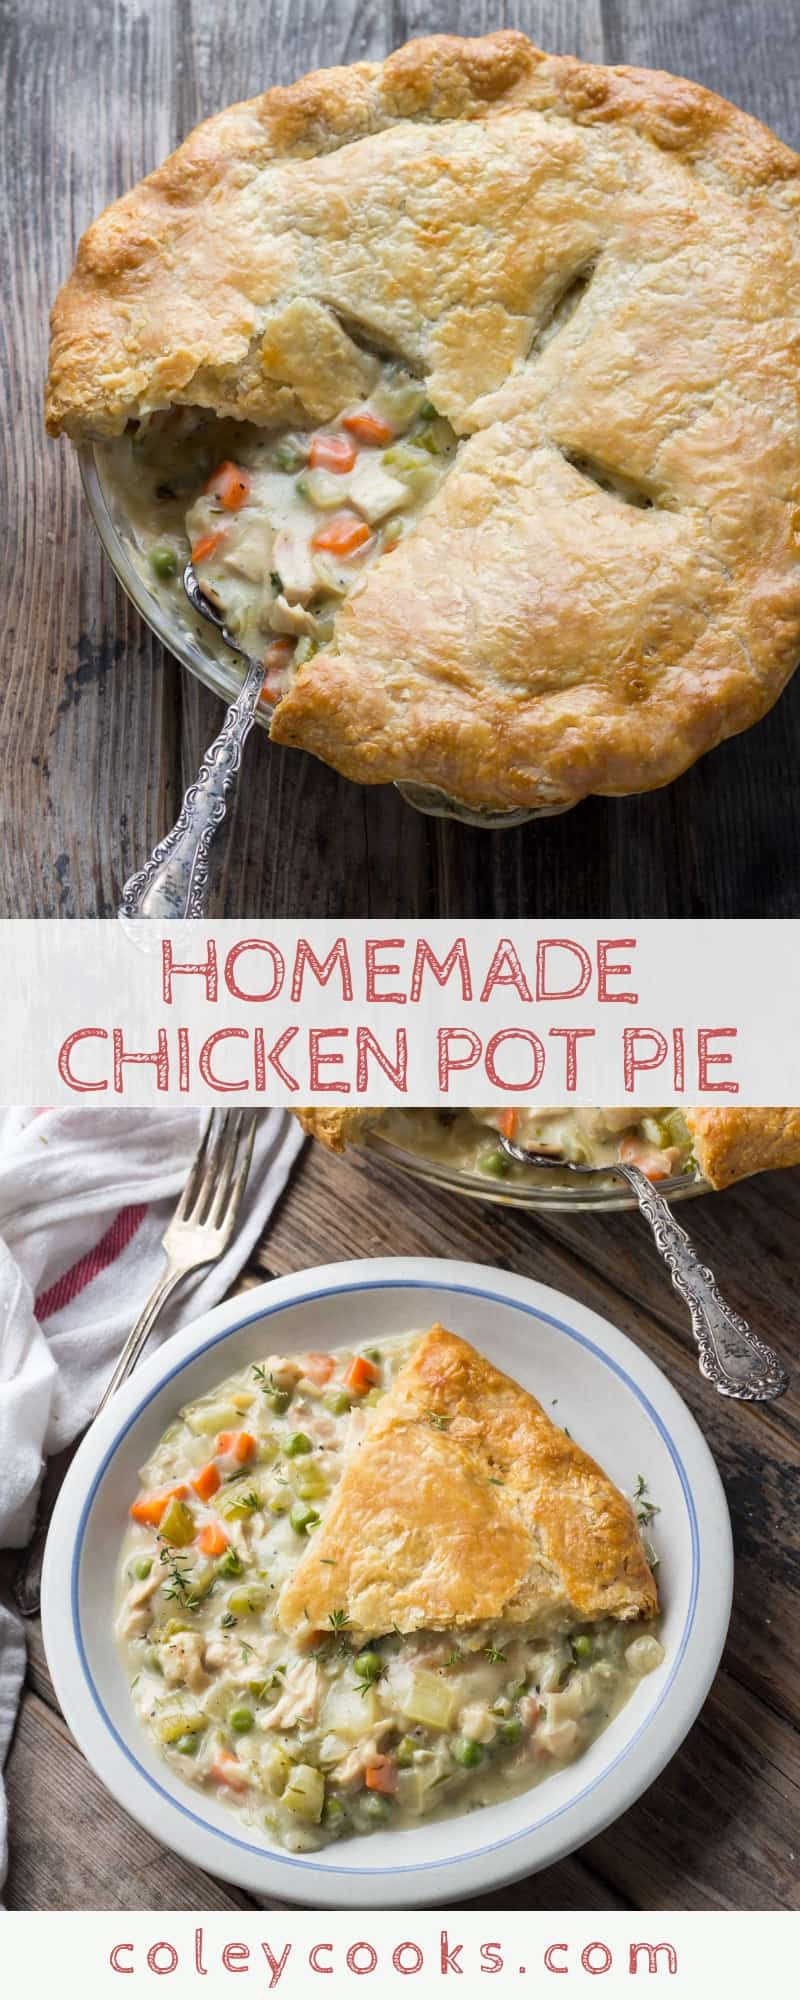 HOMEMADE CHICKEN POT PIE | The best recipe for chicken pot pie ever. Buttery crust, tender chicken lots of vegetabels and a flavorful gravy. #best #fall #recipe #chicken #potpie #pie #savory #dinner #classic | ColeyCooks.com